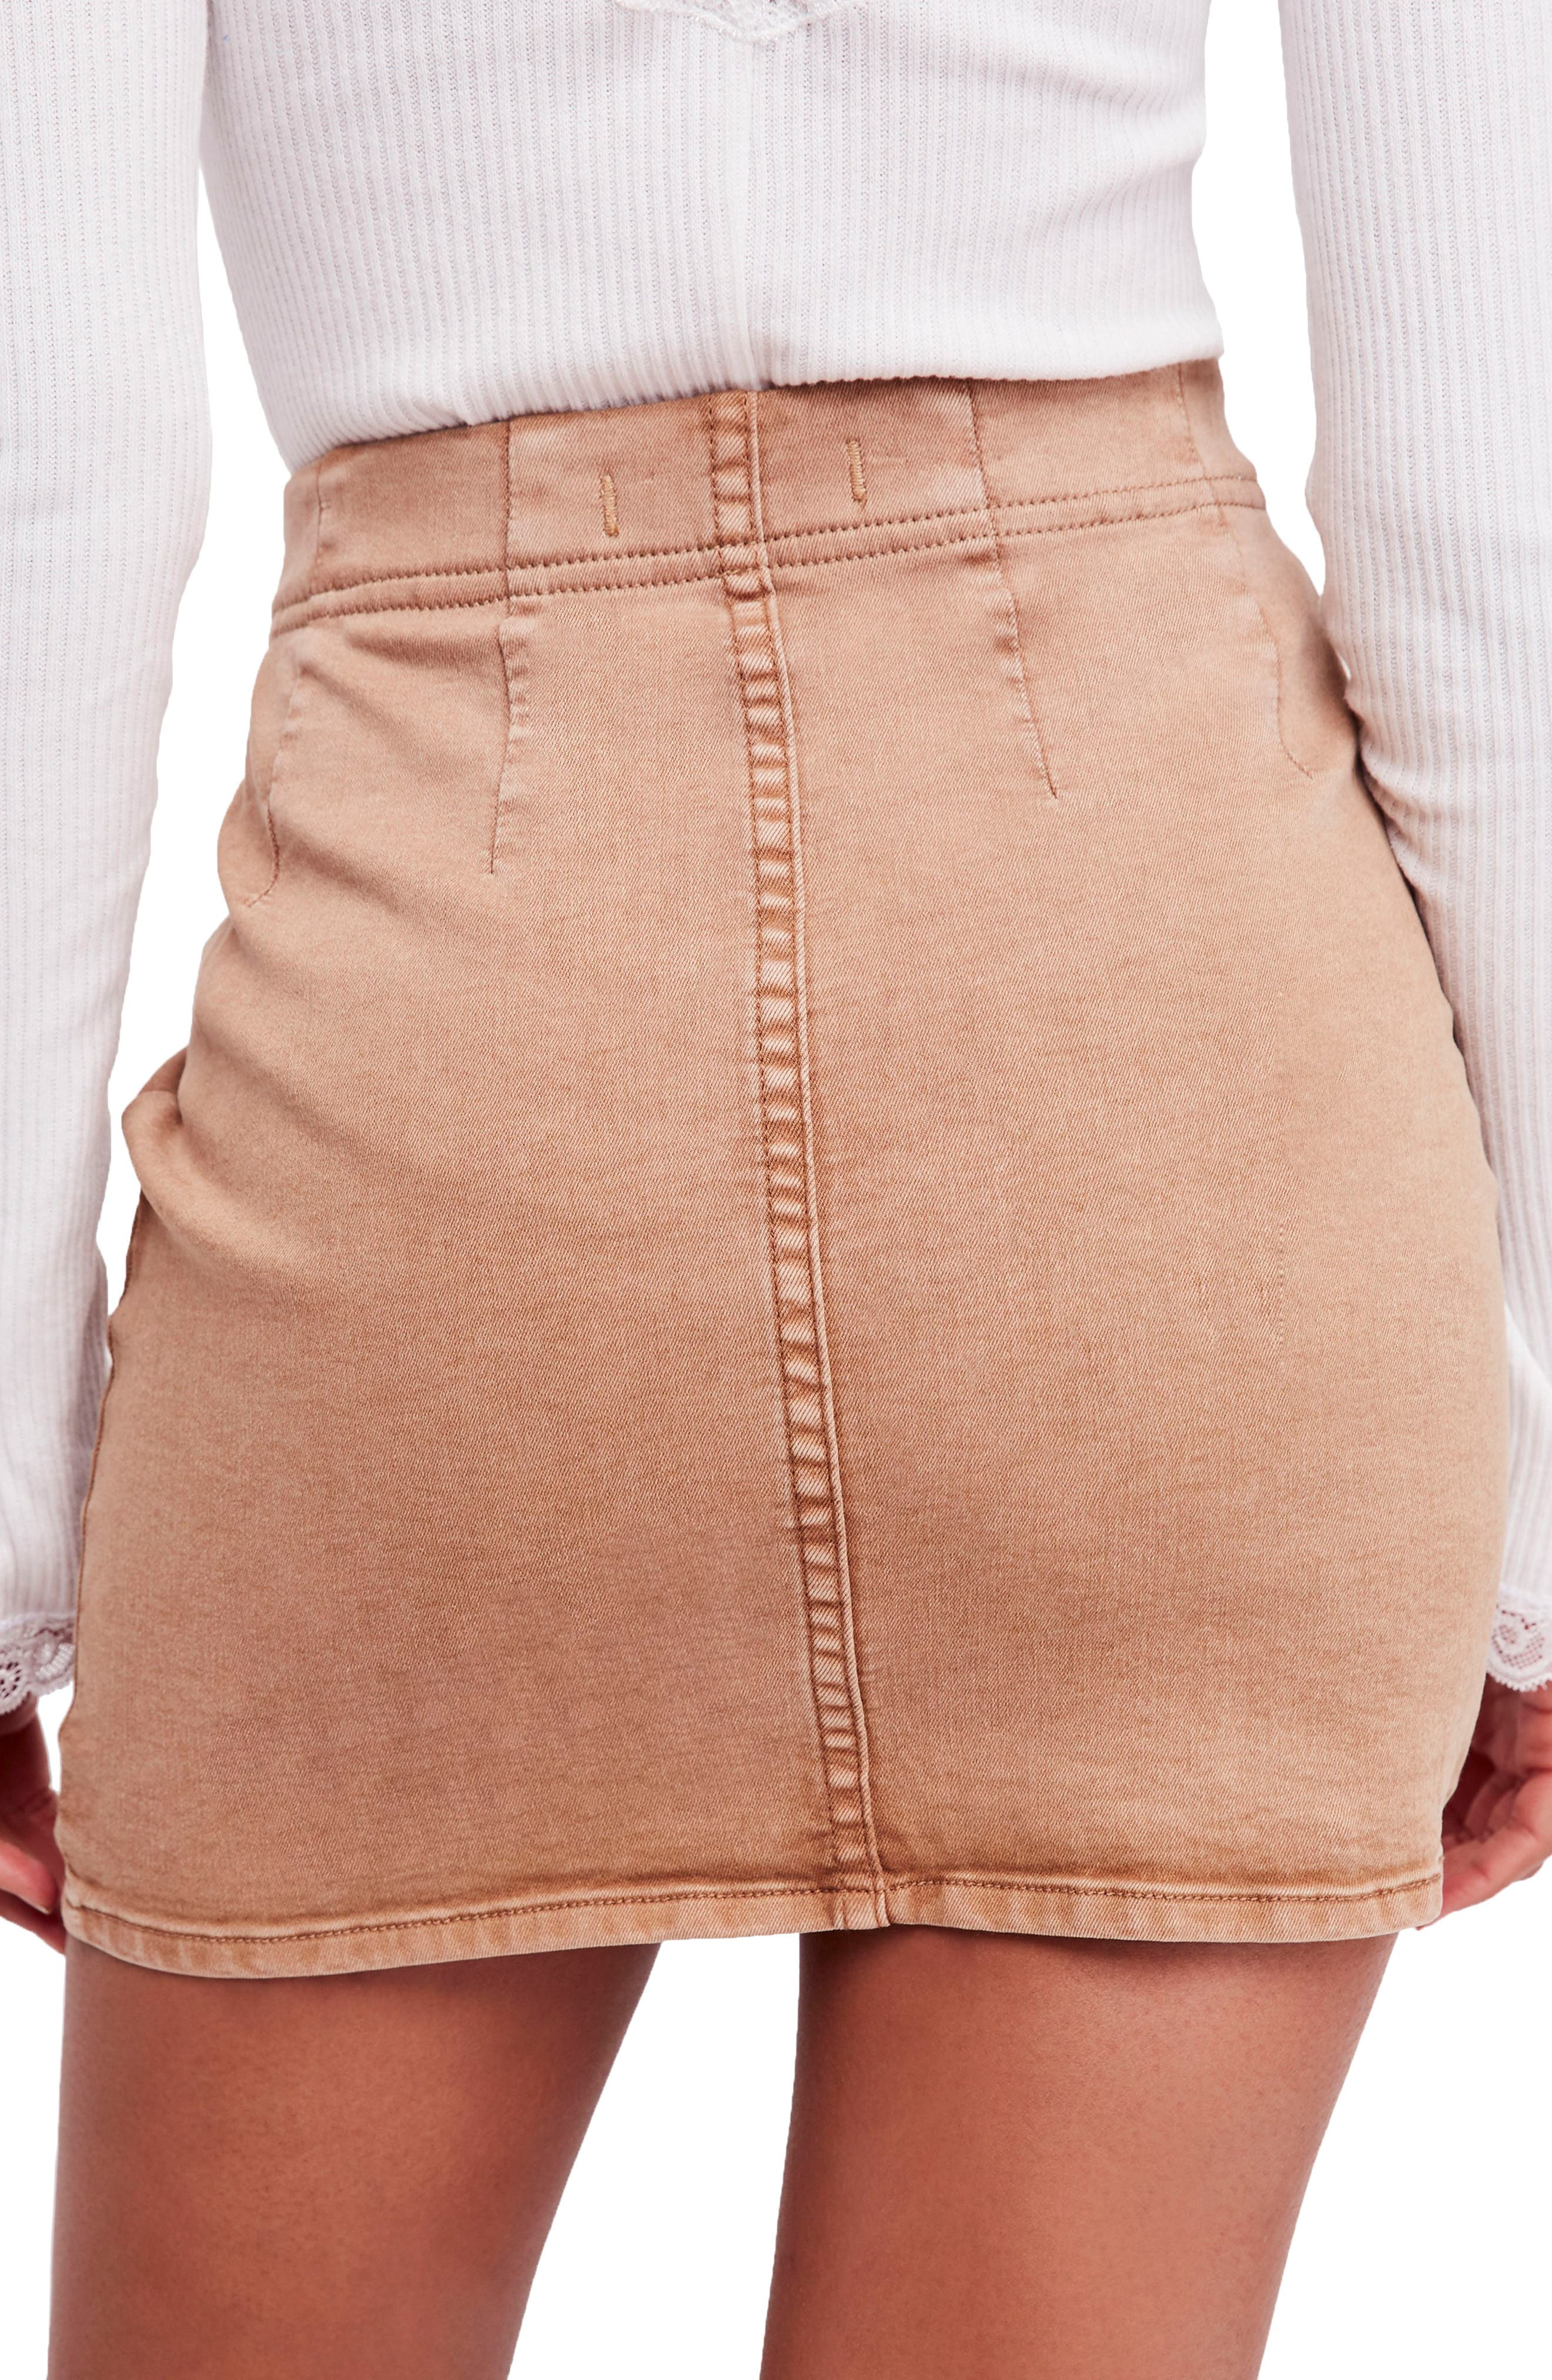 Femme Fatale Pull On Skirt,                             Alternate thumbnail 2, color,                             Khaki